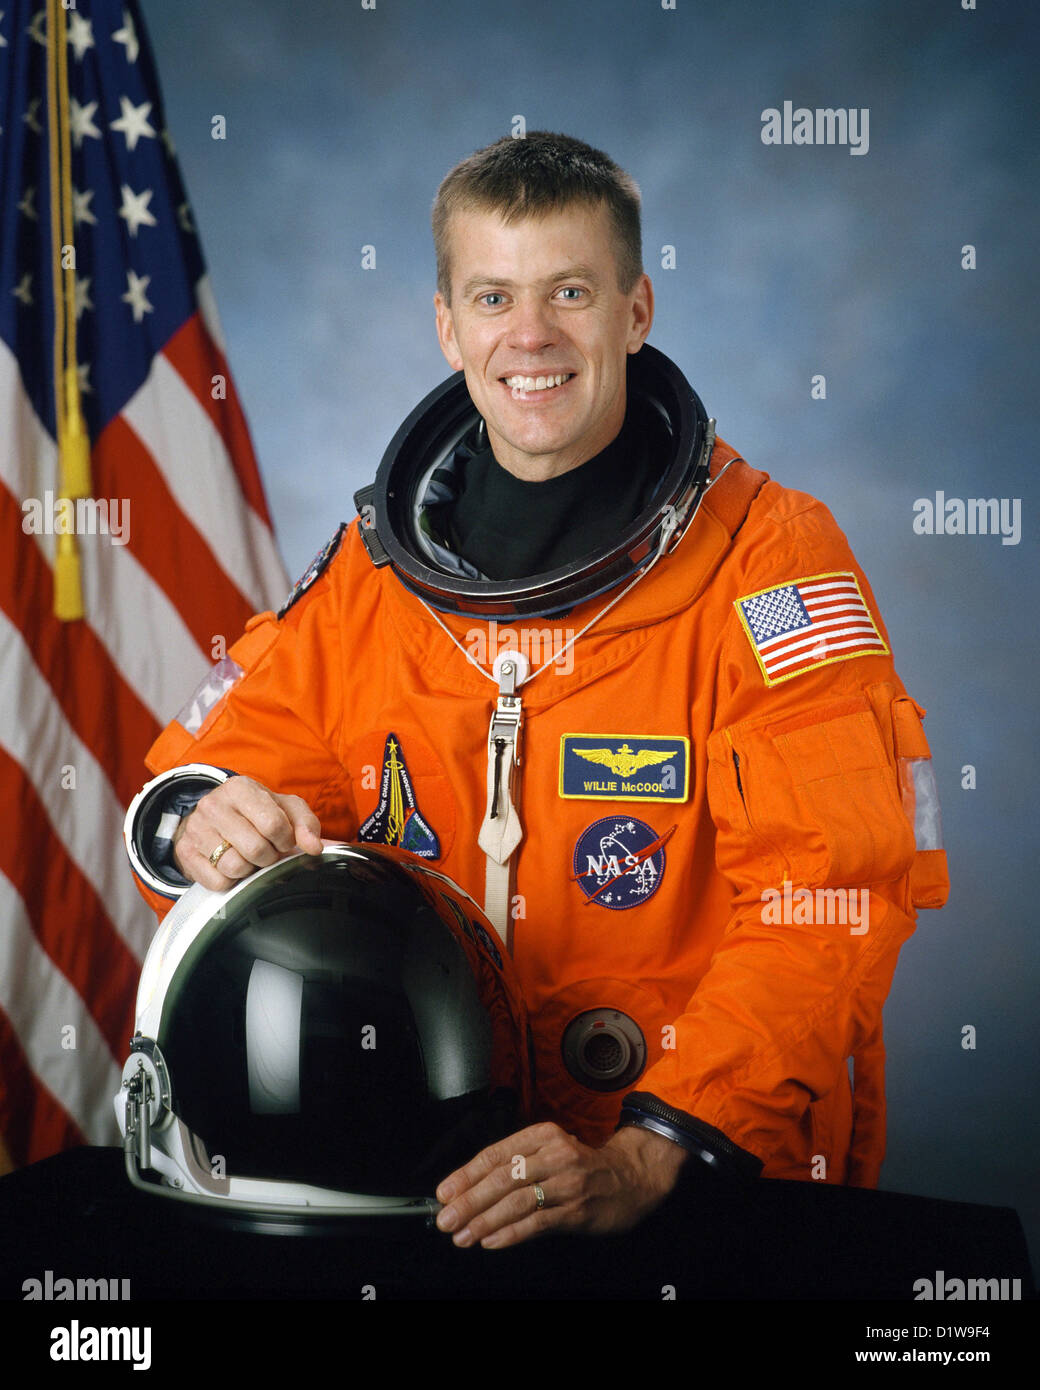 William C. McCool, American astronaut killed during the failed re-entry of Space Shuttle Columbia. - Stock Image